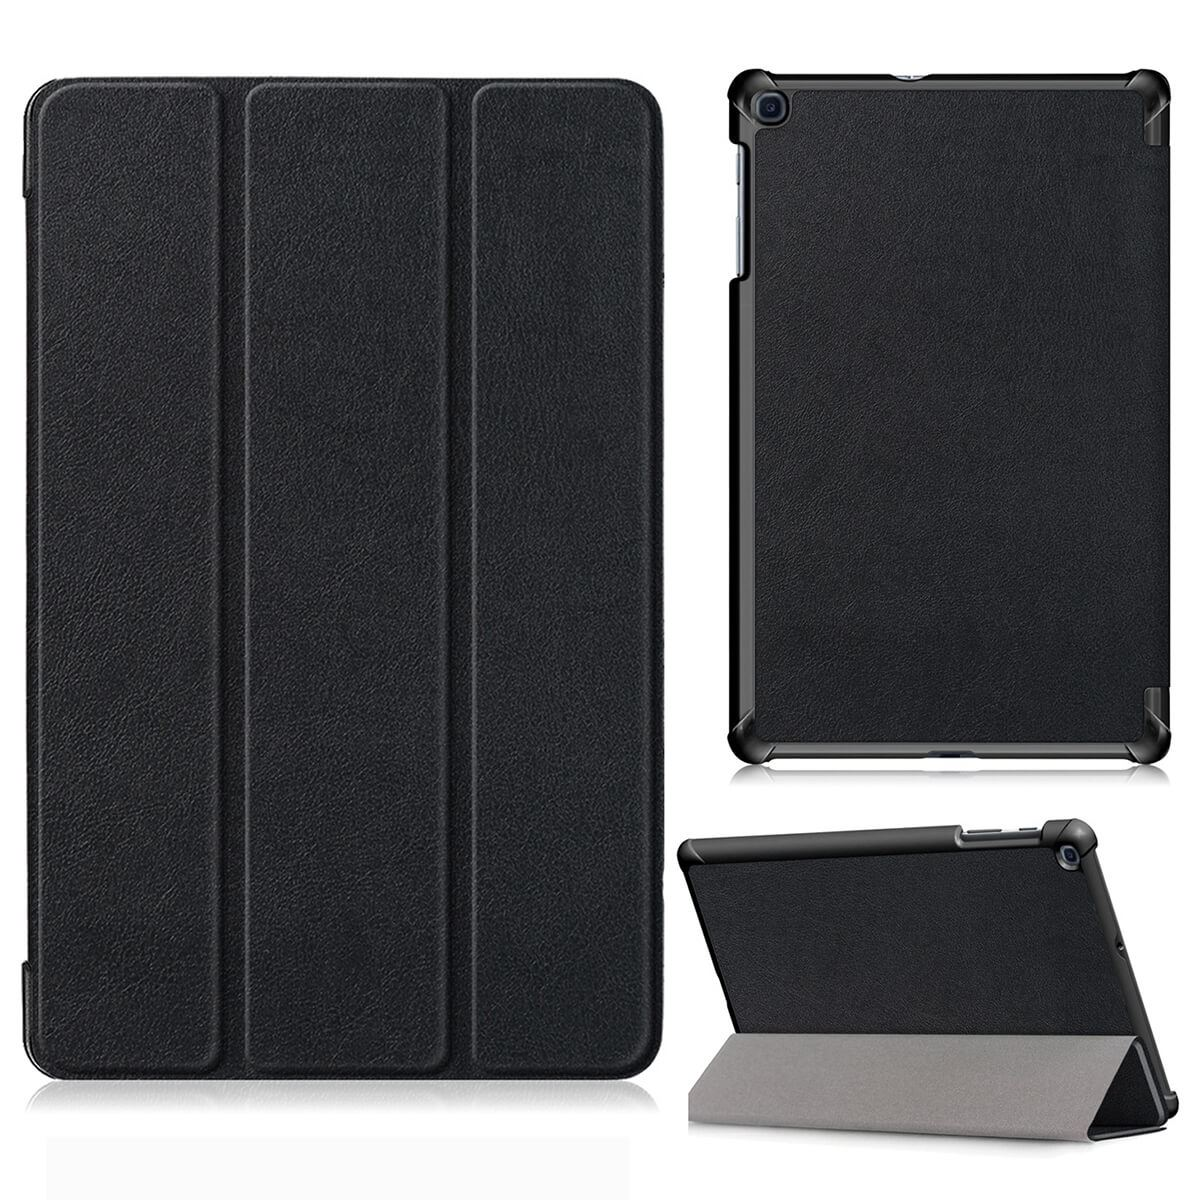 Flip-Cover-Trifold-Case-For-T510-T515-Samsung-Galaxy-Tab-A-2019-10-1-Full-Body thumbnail 19